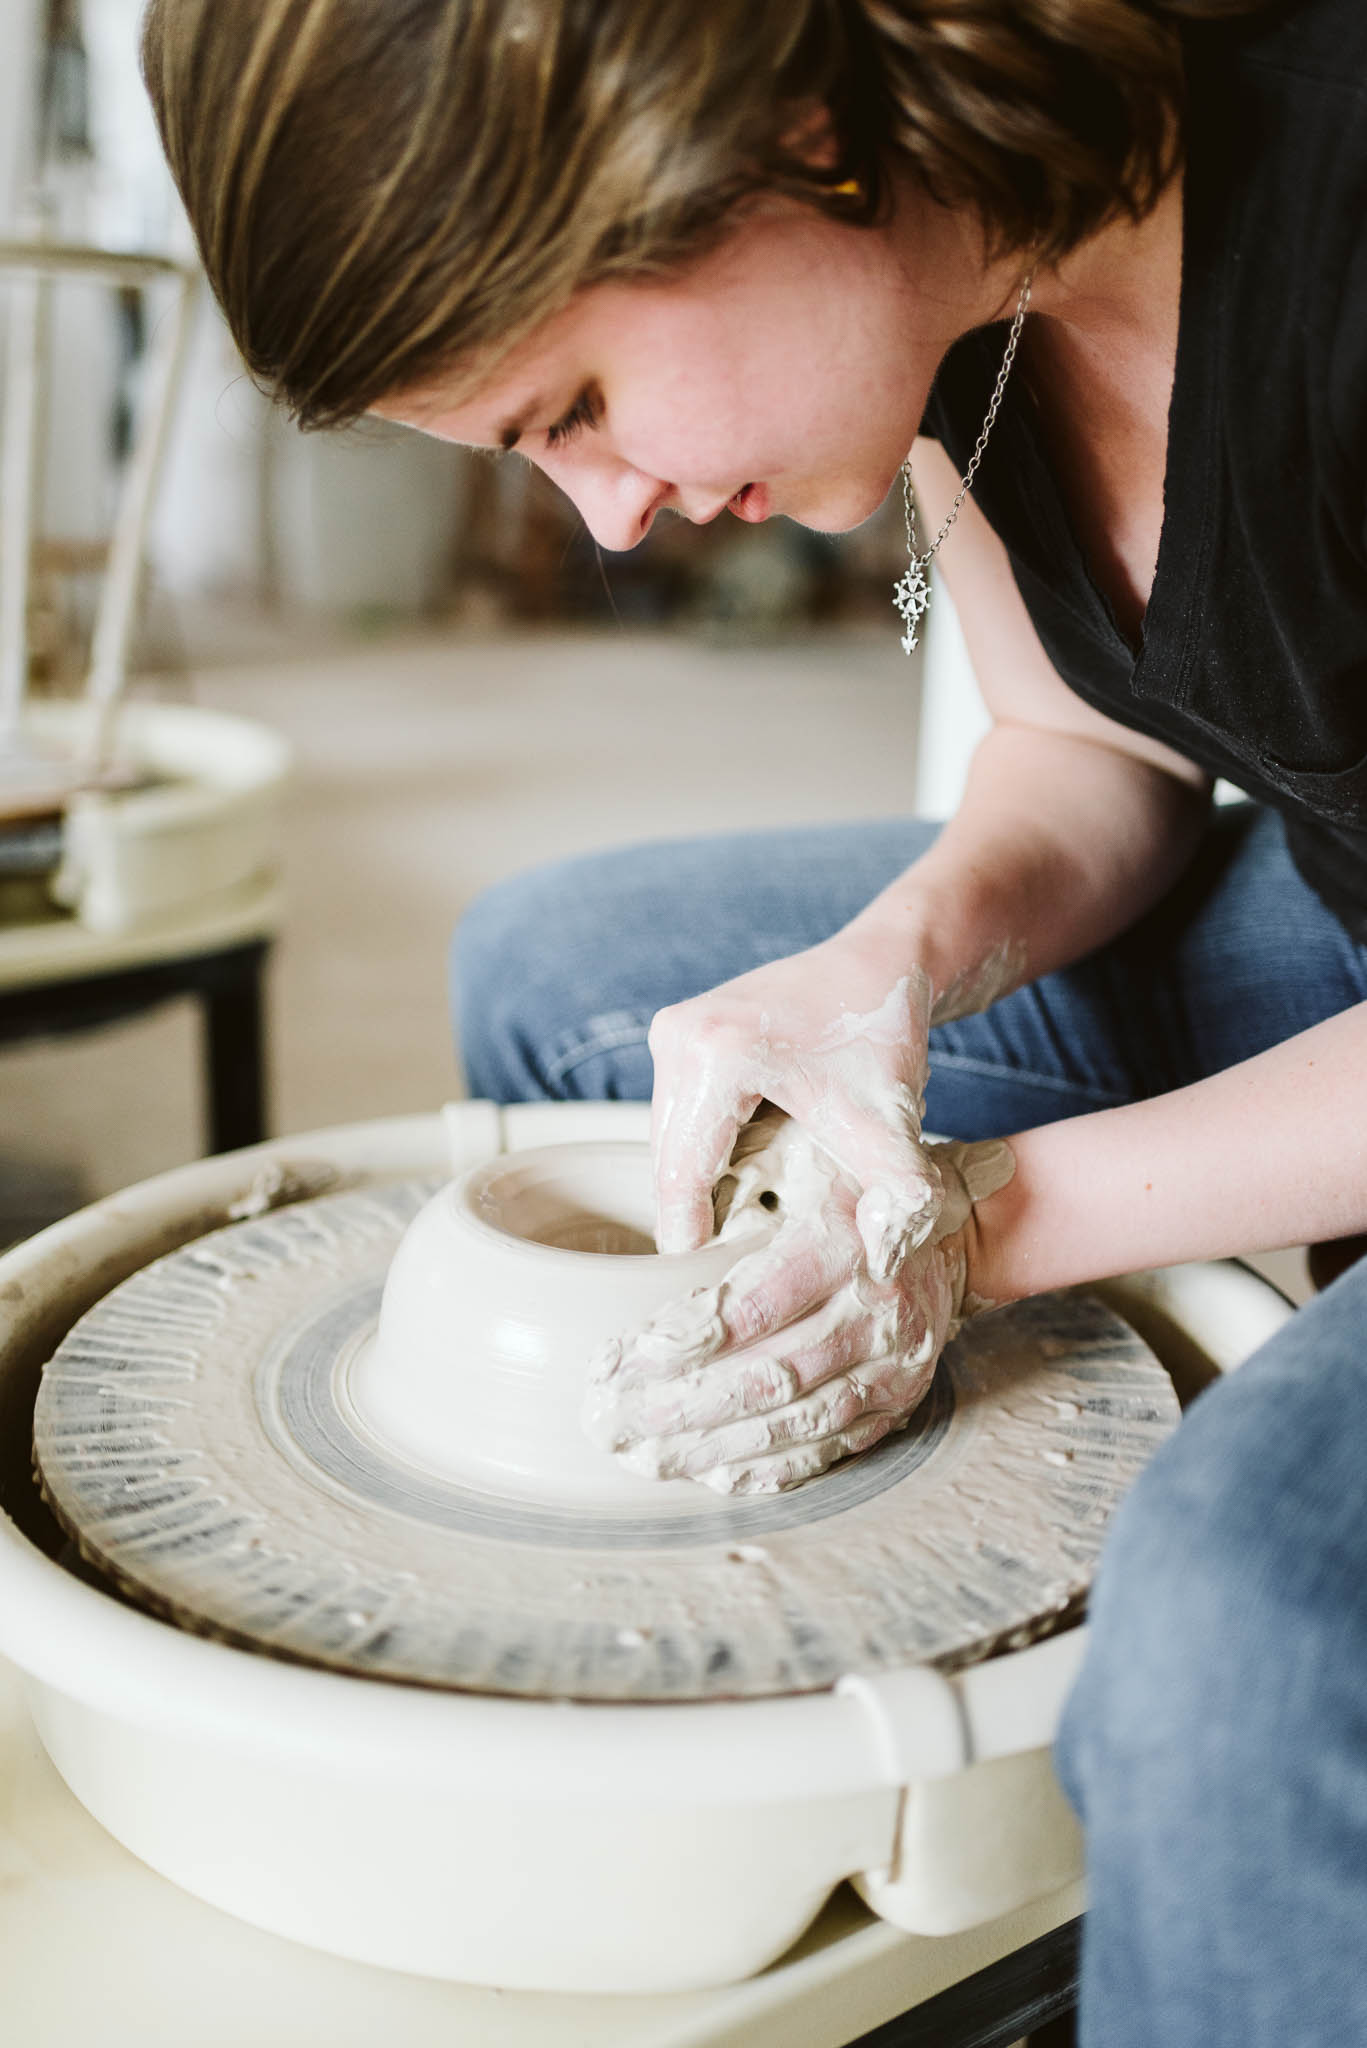 Kirsten-Smith-Photography-Reagan-Ashley-Pottery82.jpg